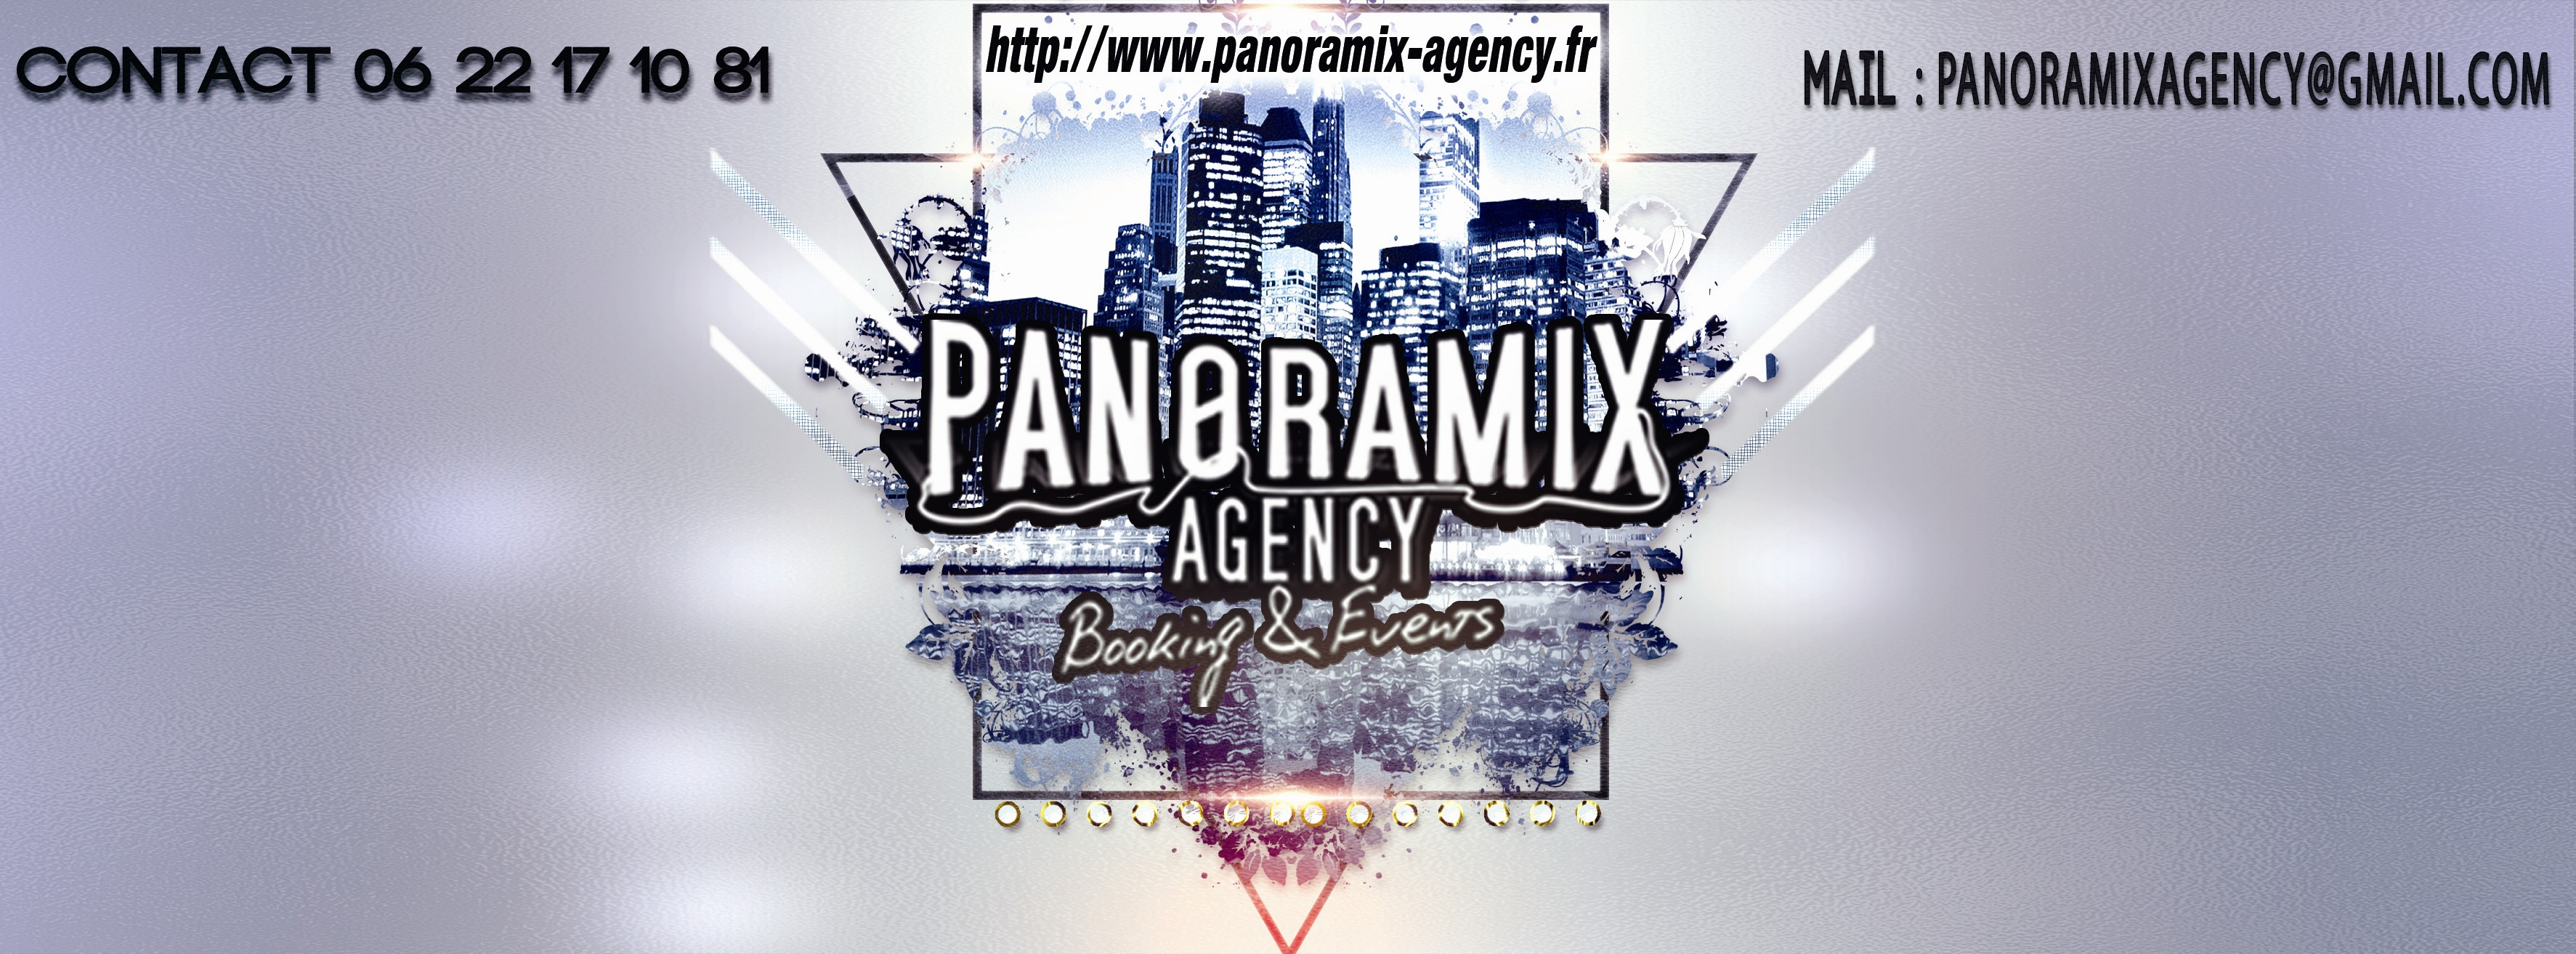 http://panoramix-radio-station.com/wp-content/uploads/2017/04/panoramix-agency-banner-grise-TEL-SITE.jpg